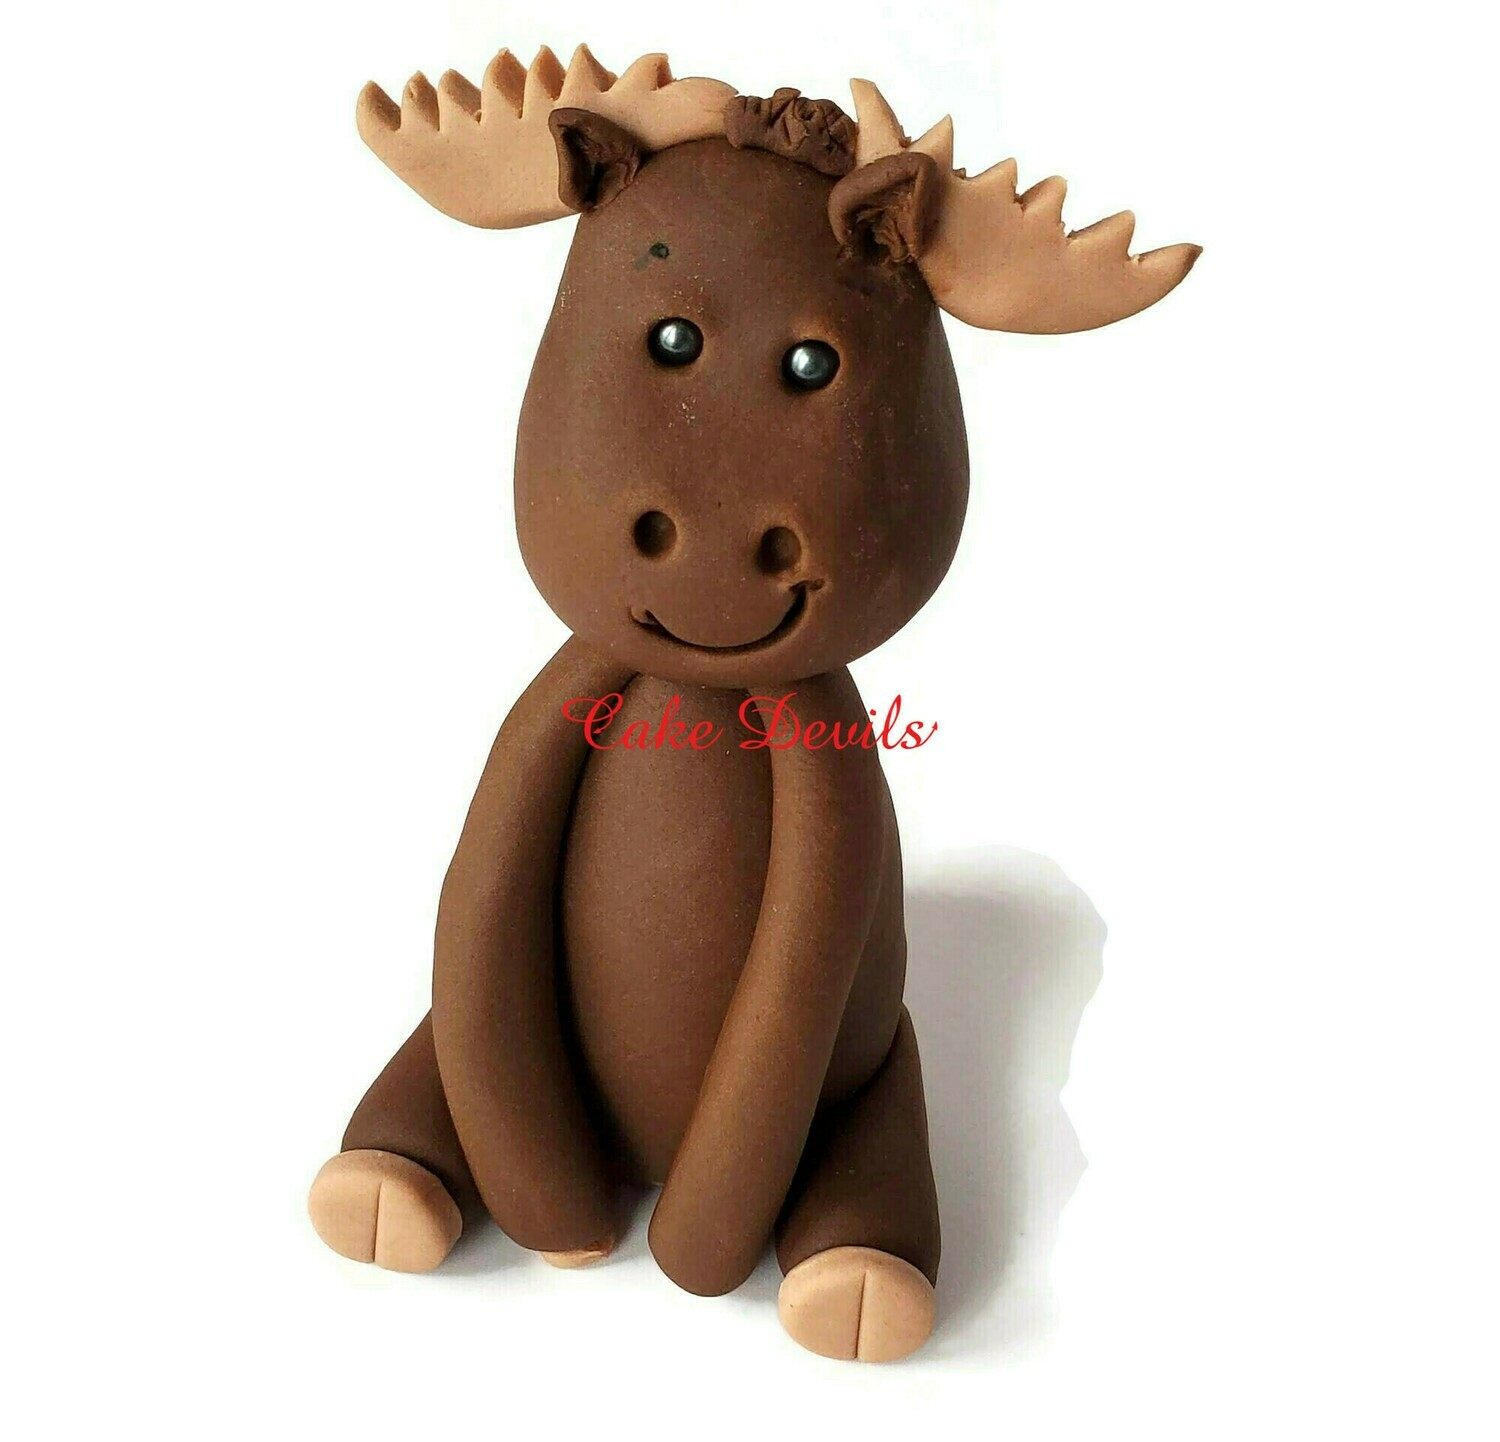 Fondant Moose Cake Topper, Great with the Woodland Animal kits!